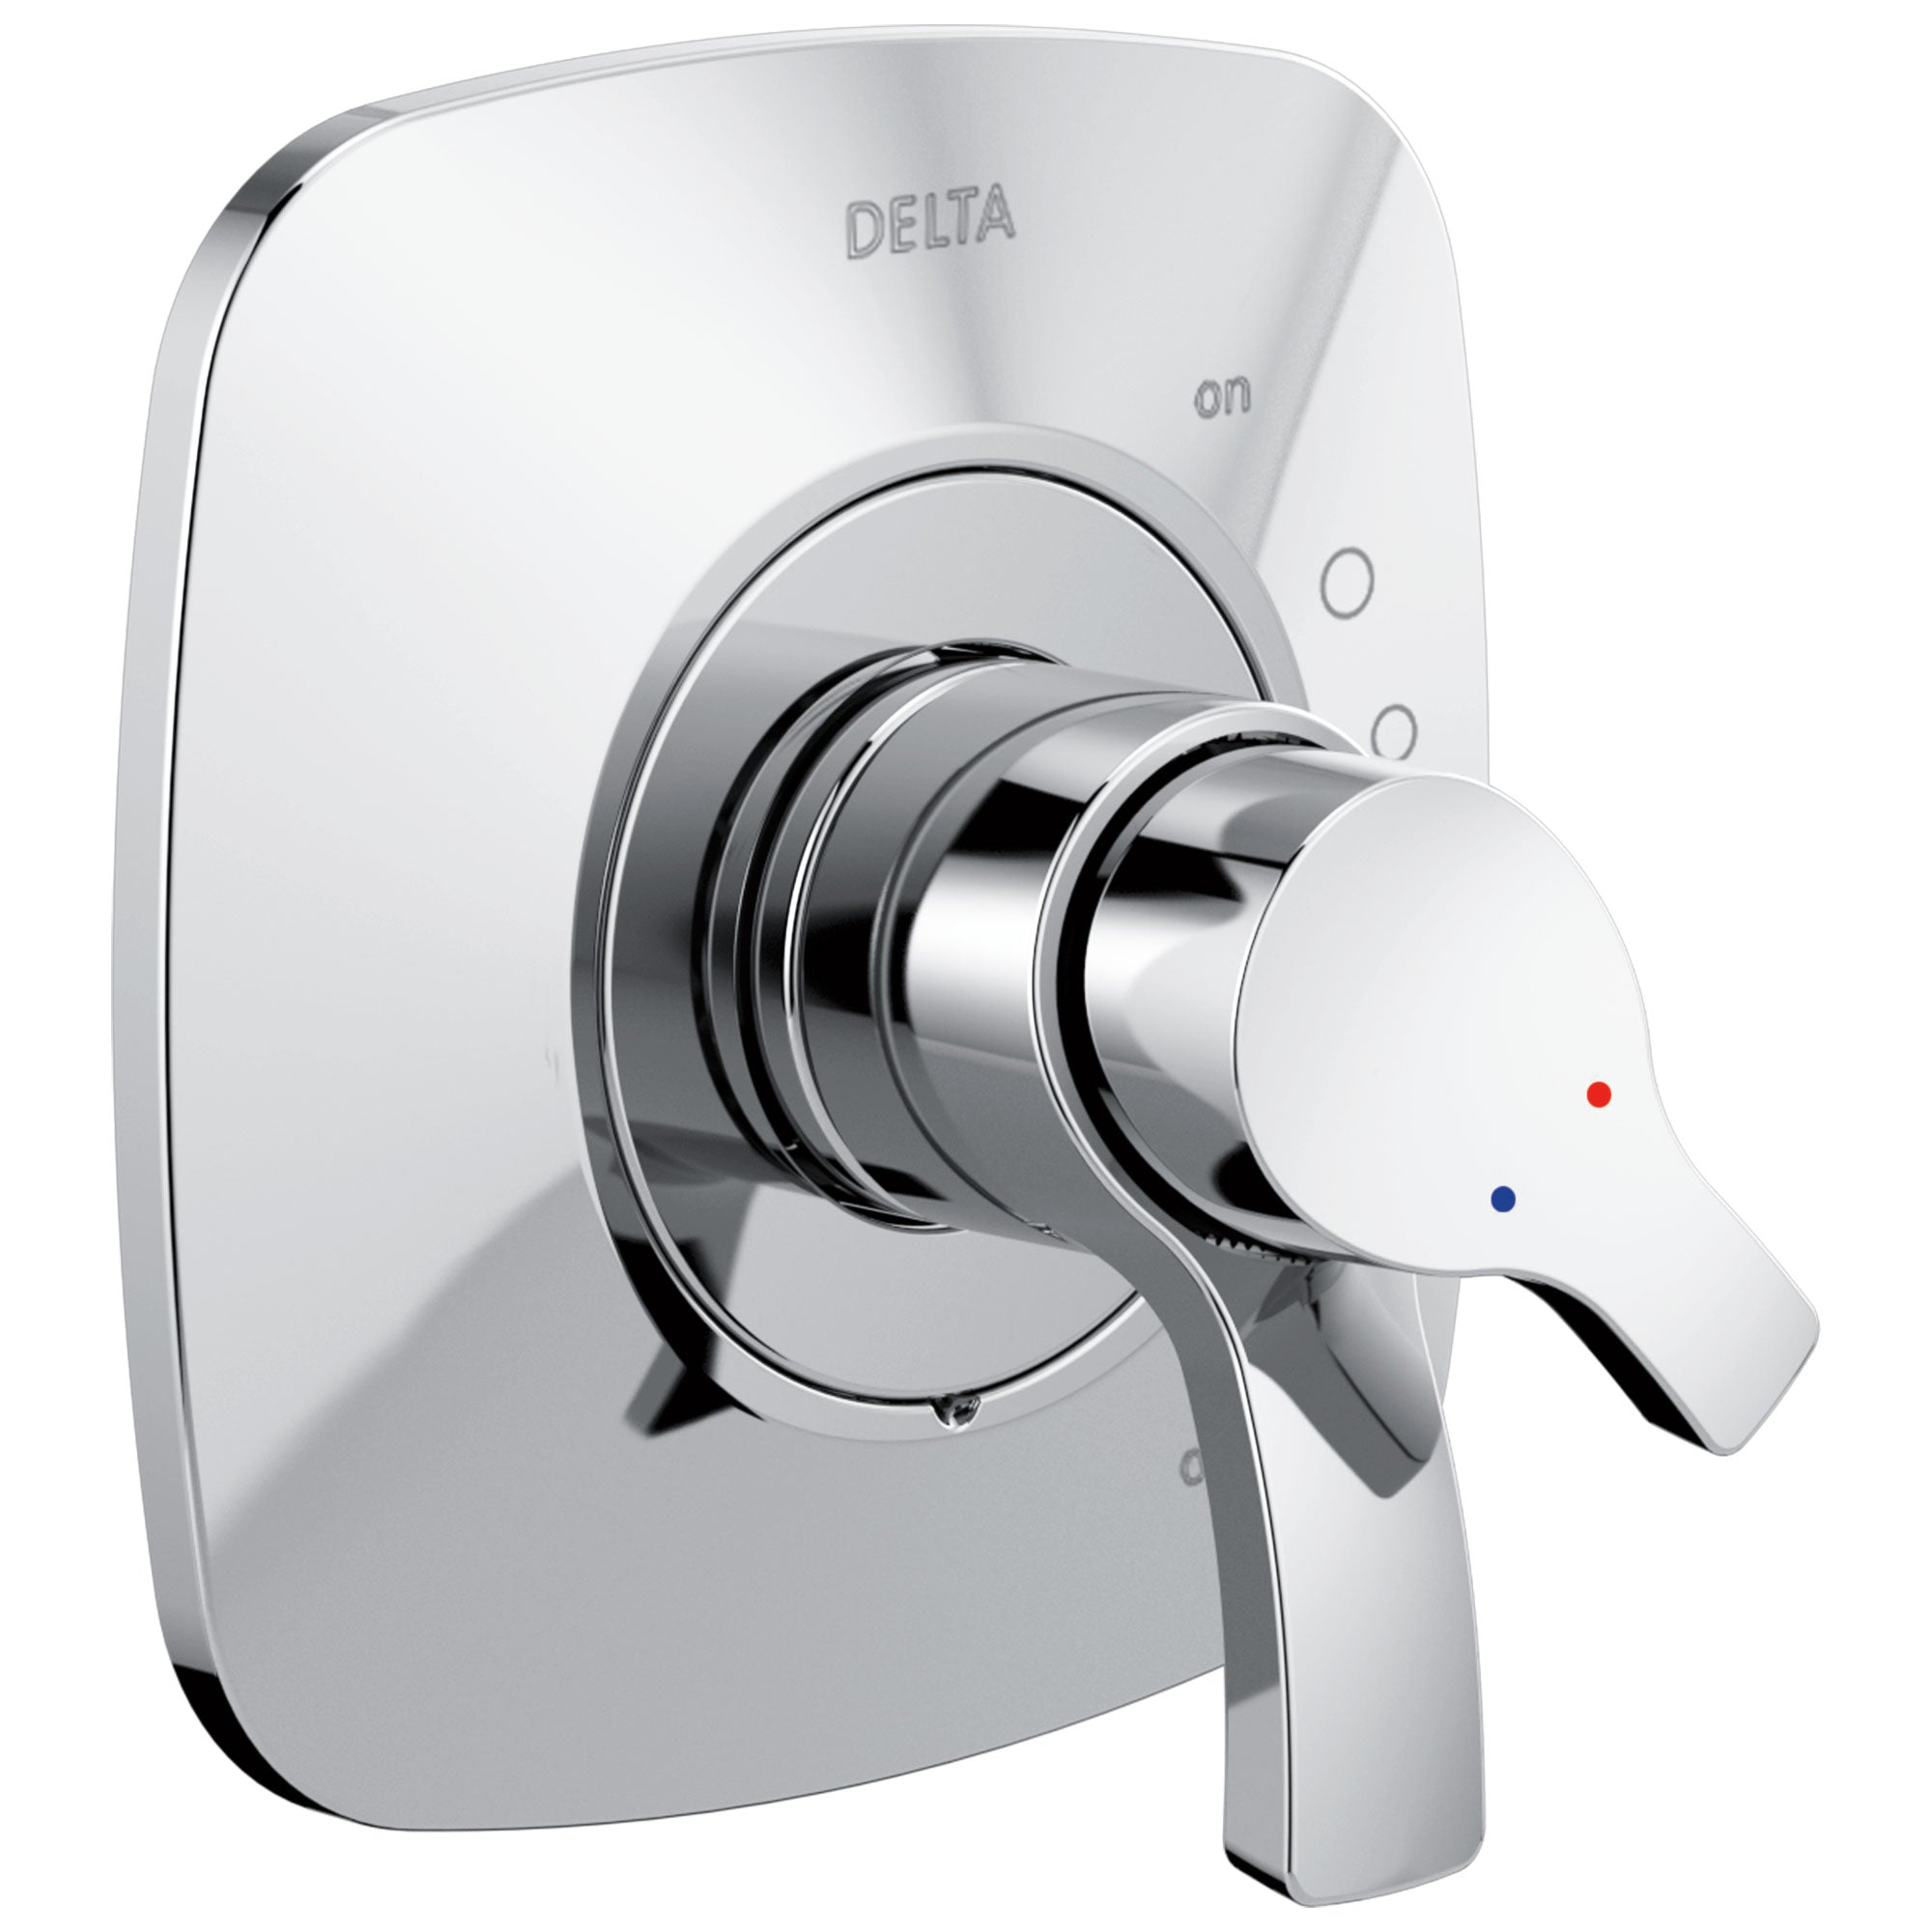 Delta Tesla Collection Chrome Monitor 17 Dual Temperature and Water Pressure Shower Faucet Control Handle Includes Trim Kit and Valve without Stops D1982V